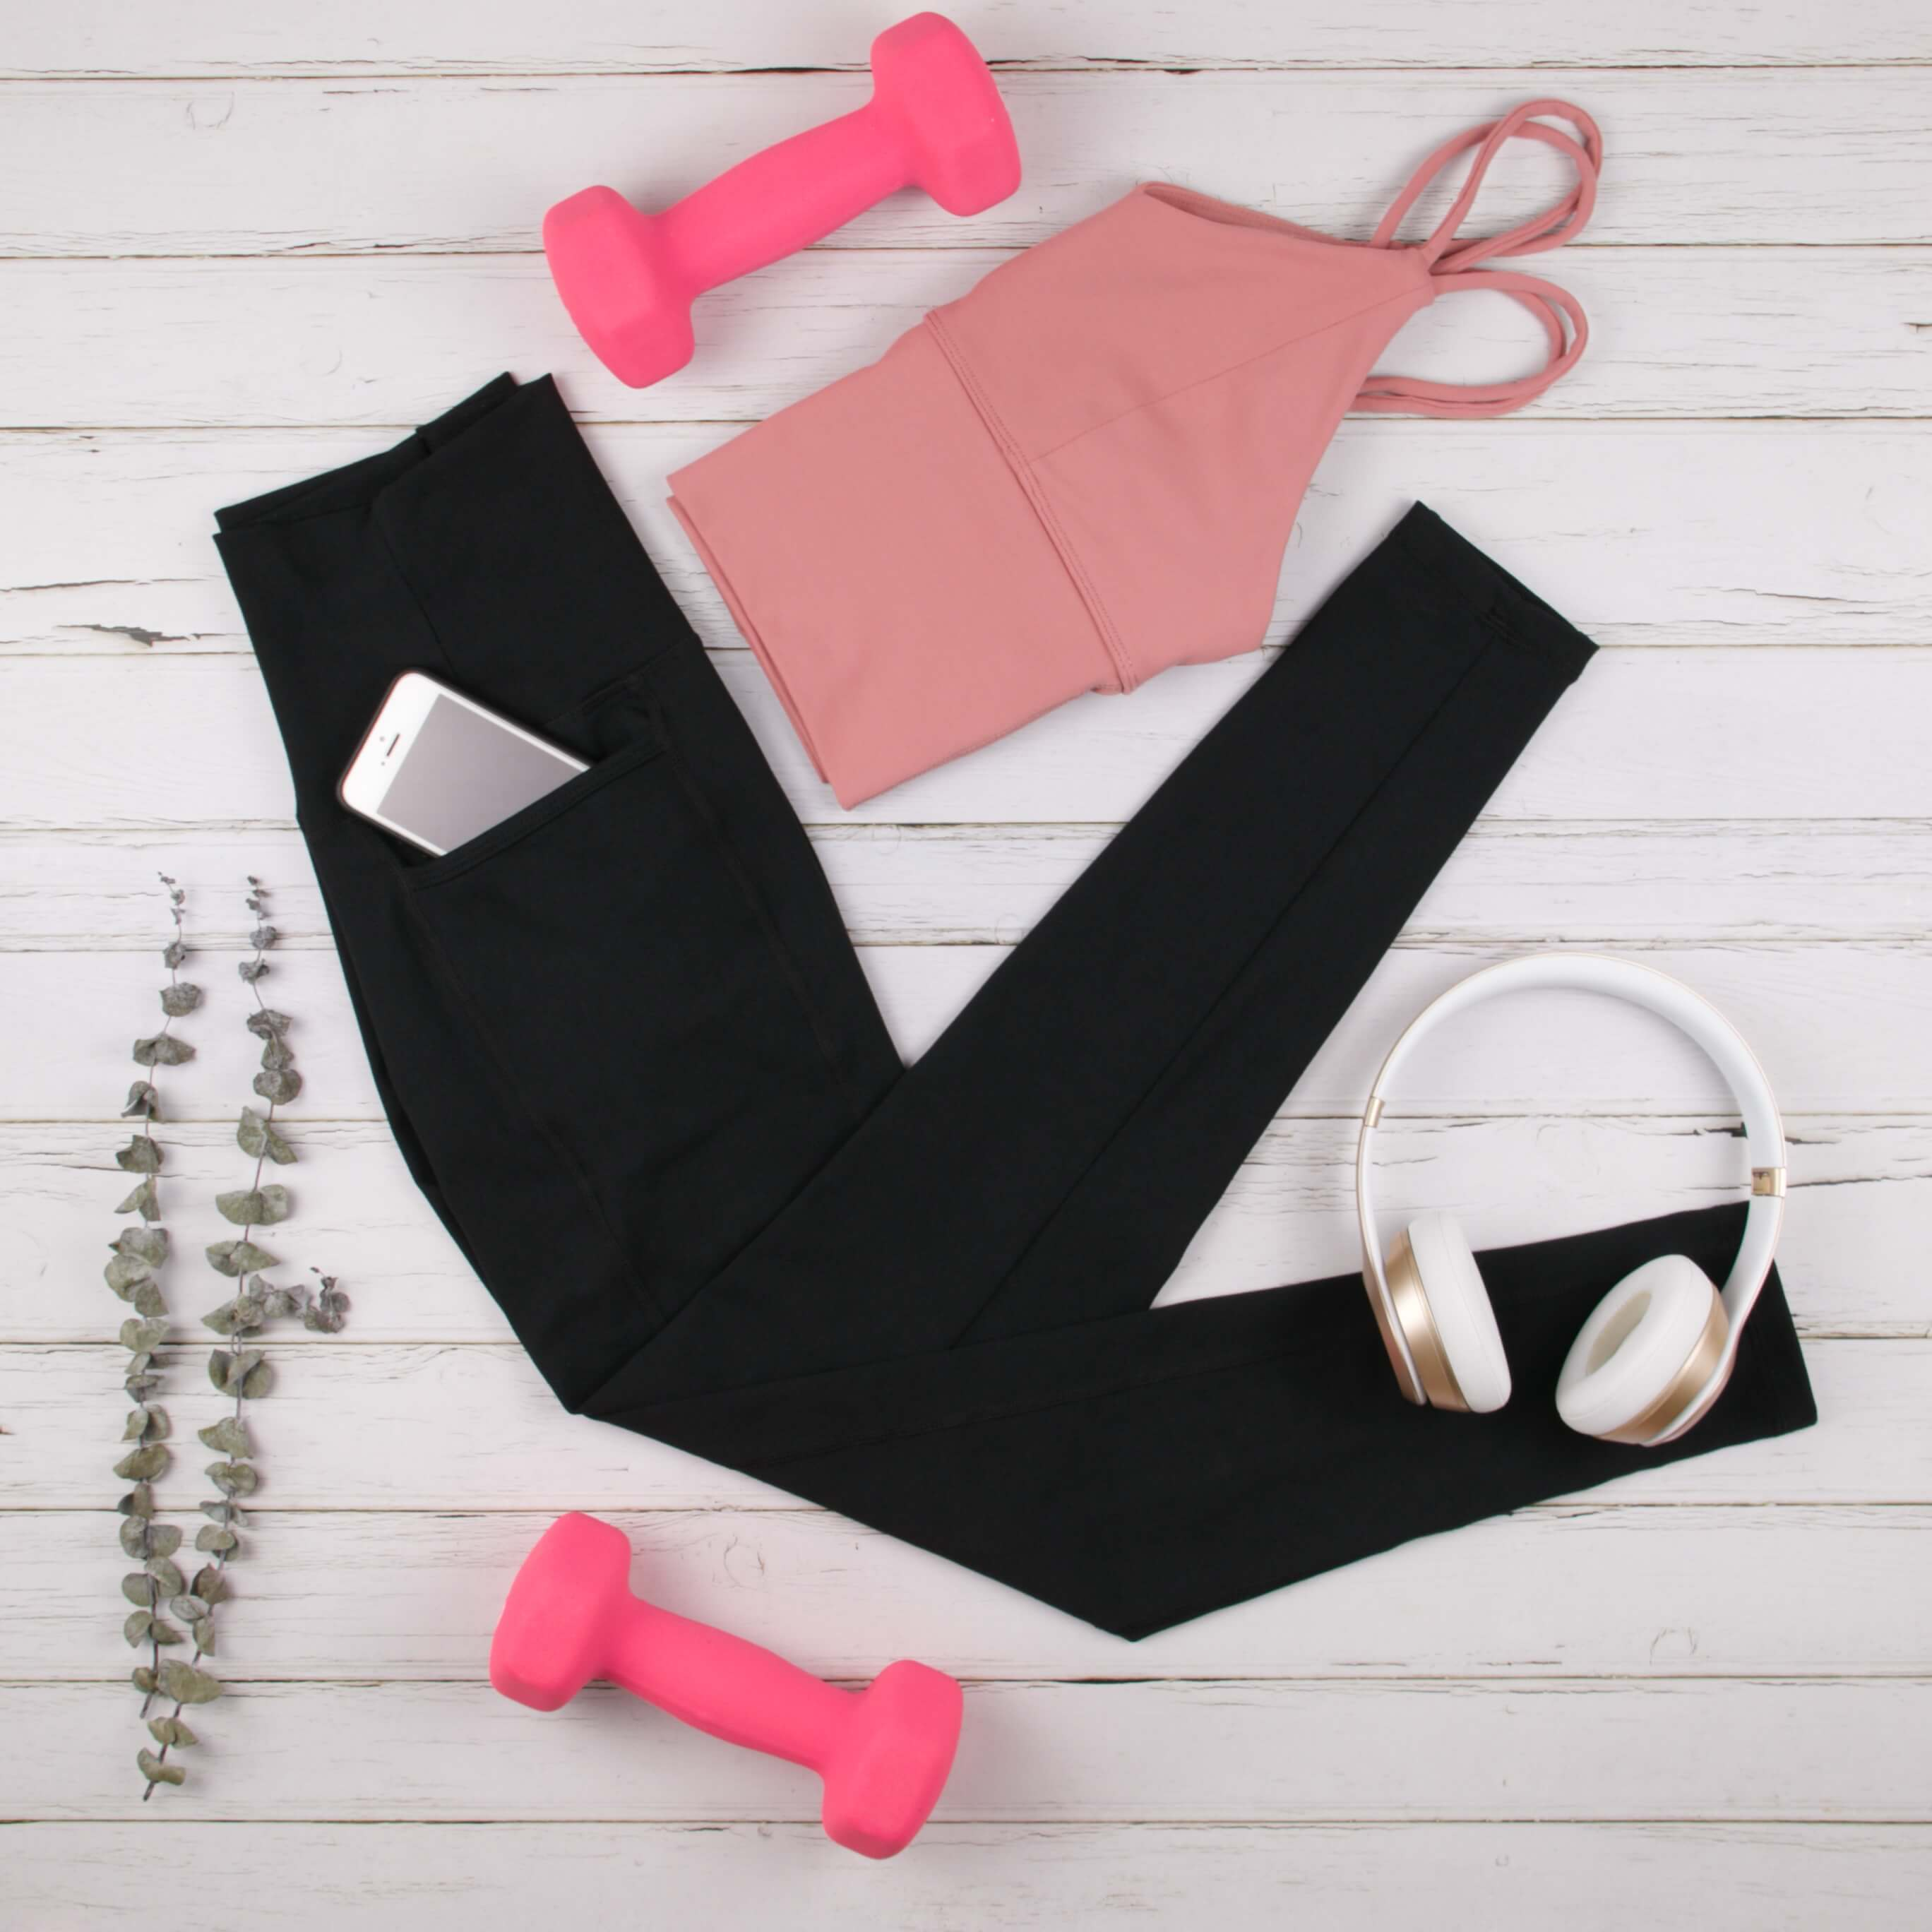 The Fitness Trends That You Don't Want to Miss in 2020 - Leggings with Pockets and Strappy Crop Tank Top Flat Lay - Utility and Comfort | Hummingbird